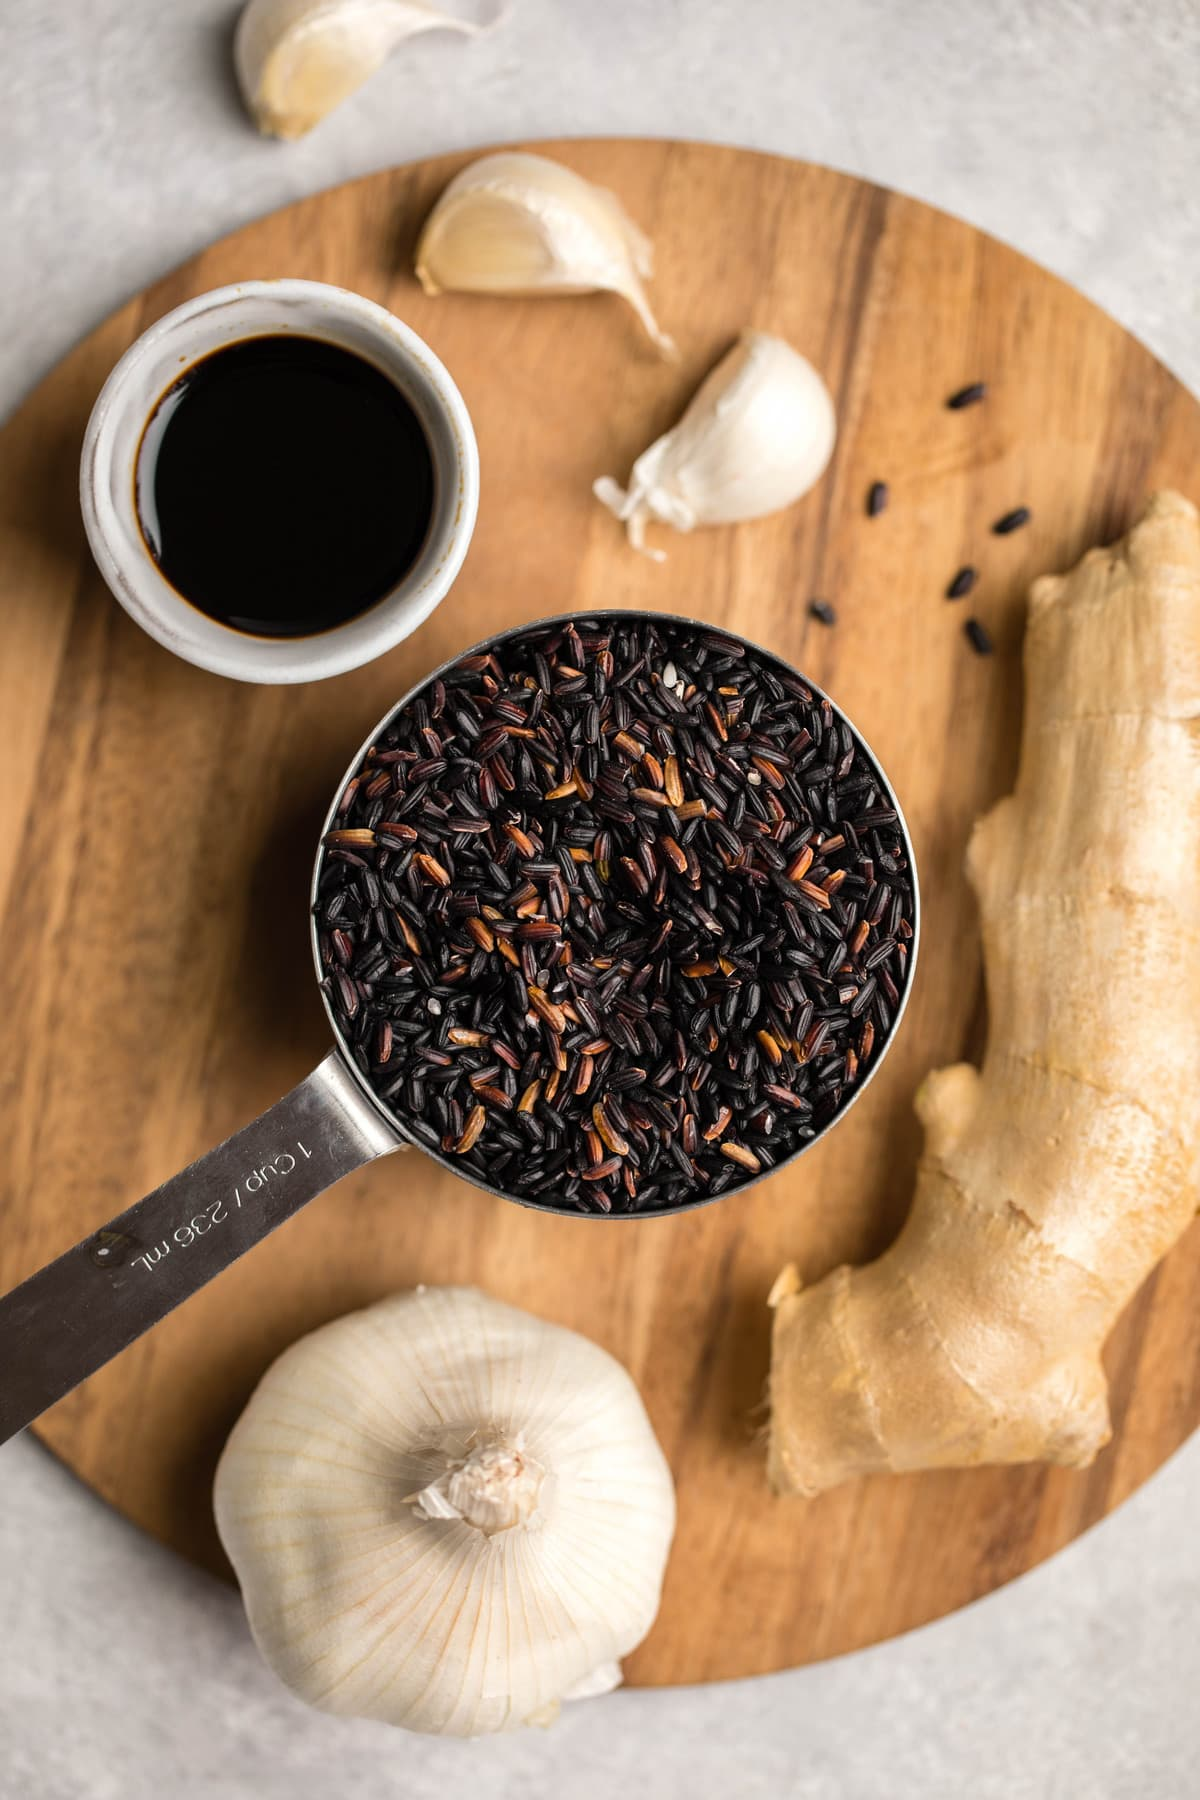 ingredients for teriyaki black rice arranged on round wooden cutting board